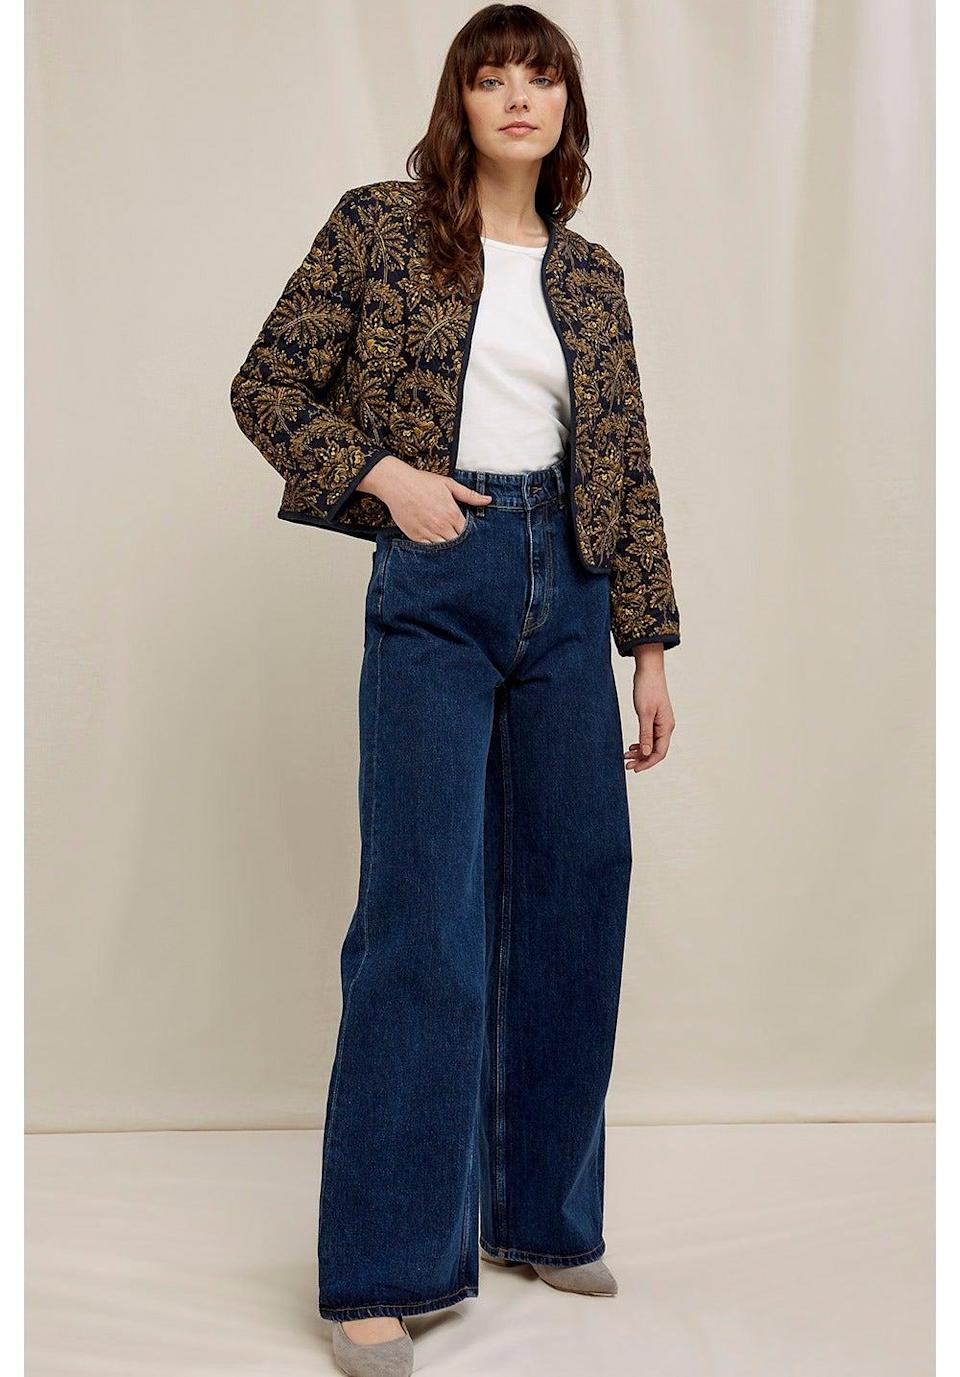 """<br><br><strong>People Tree</strong> V&A Rosa Print Jacket, $, available at <a href=""""https://www.peopletree.co.uk/edits/va-collection/va-rosa-print-jacket"""" rel=""""nofollow noopener"""" target=""""_blank"""" data-ylk=""""slk:People Tree"""" class=""""link rapid-noclick-resp"""">People Tree</a>"""